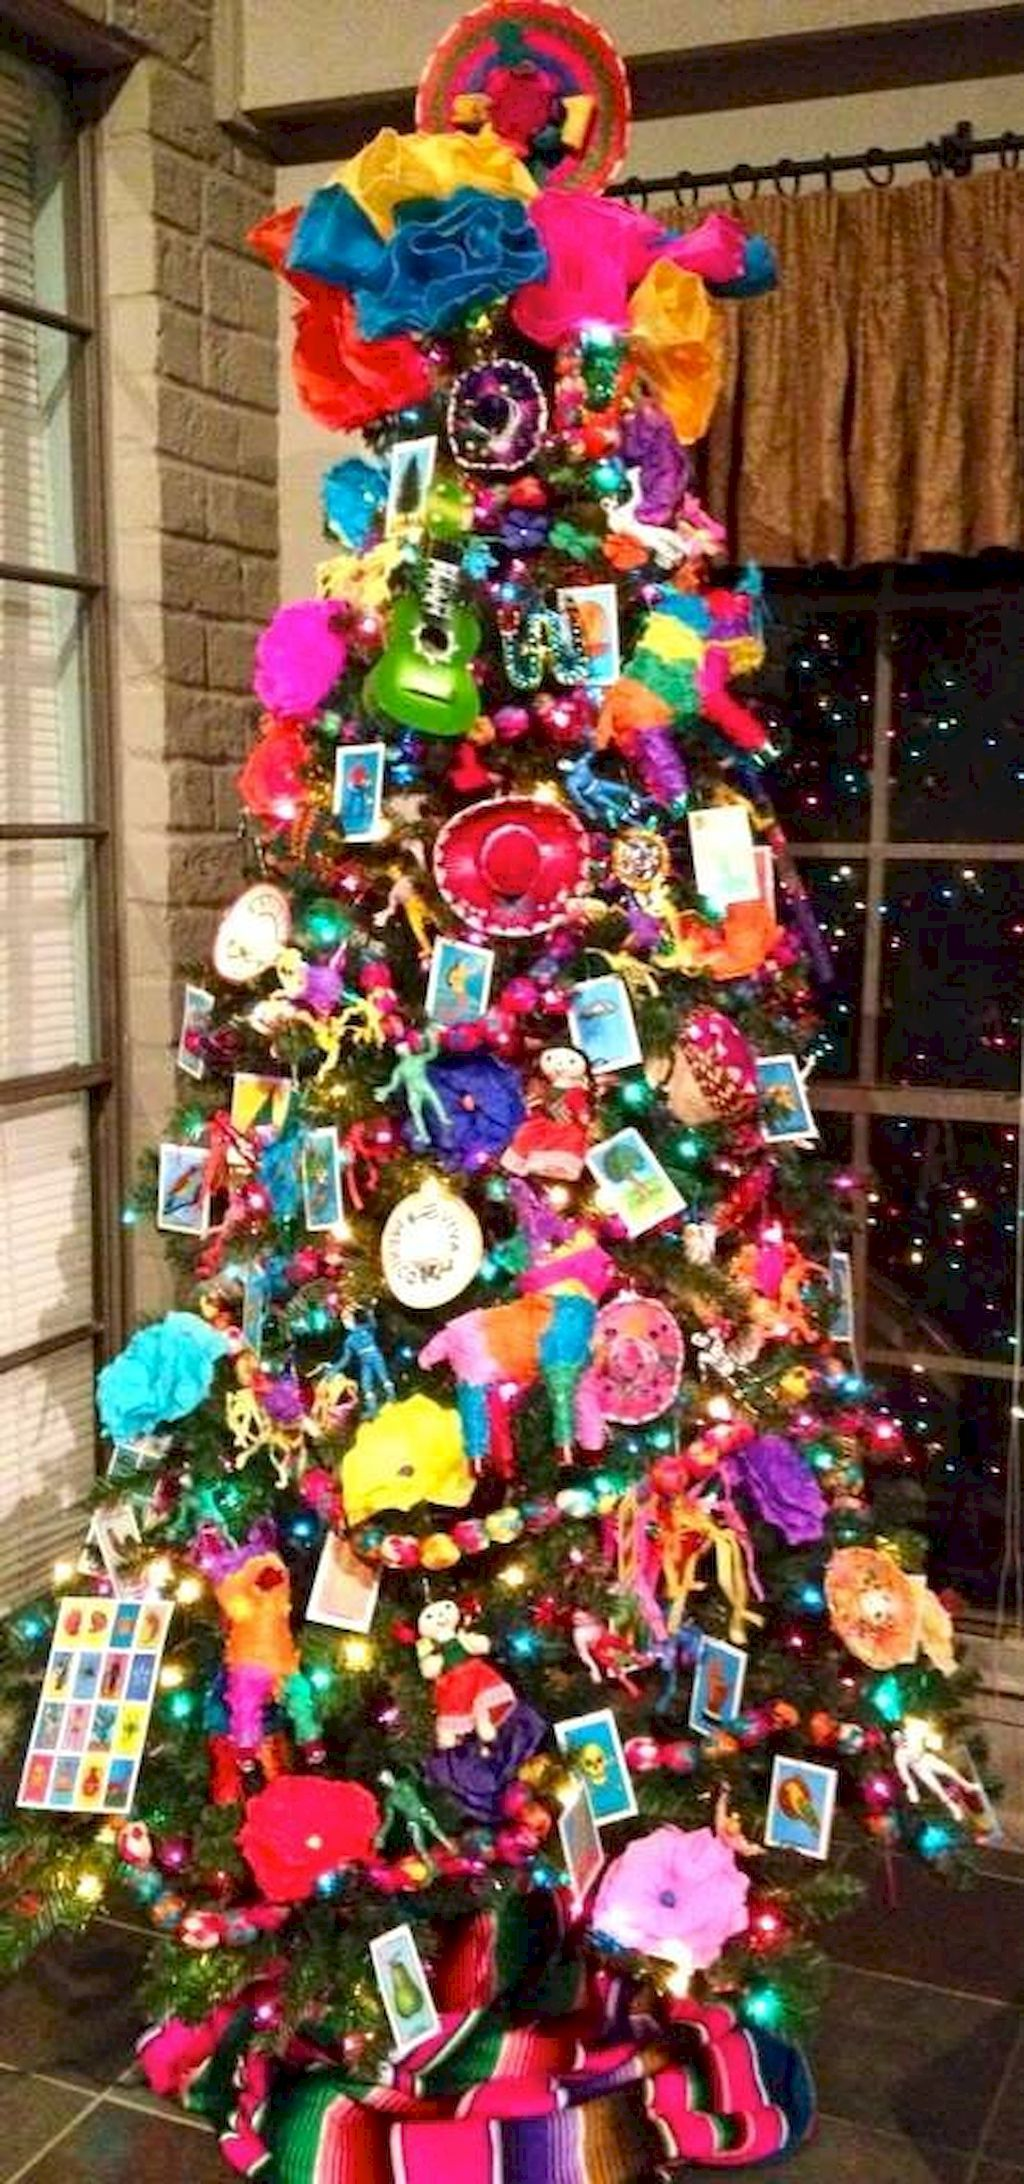 Excellent Christmas Craft Ideas For Your Living Room Home To Z Christmas Tree Themes Mexican Christmas Decorations Christmas Fiesta